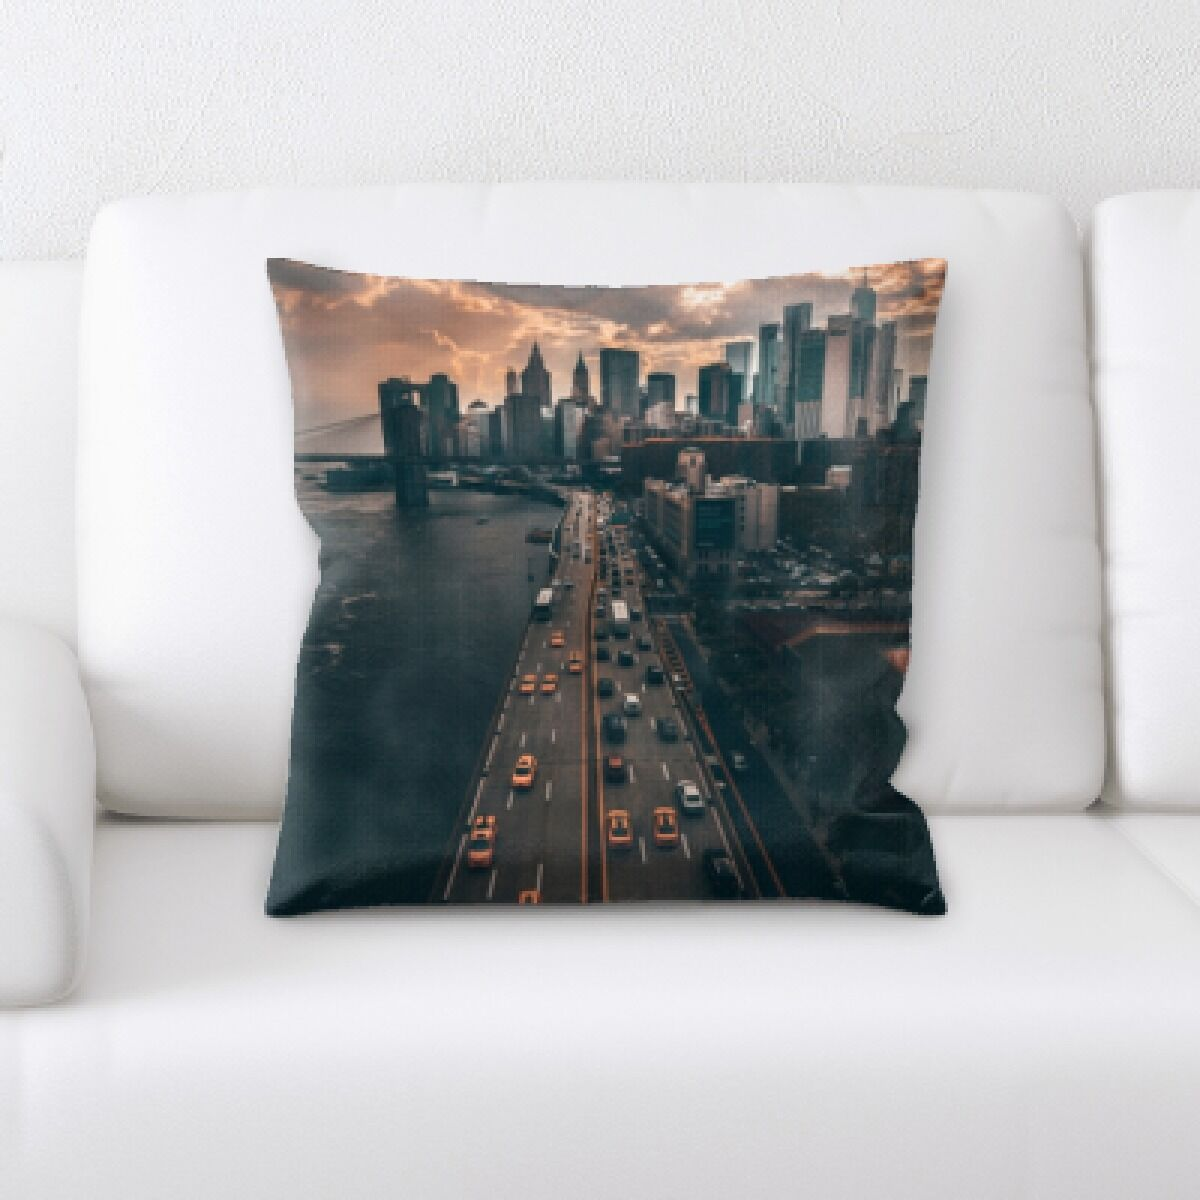 Quintara A Road to Many Places (103) Throw Pillow